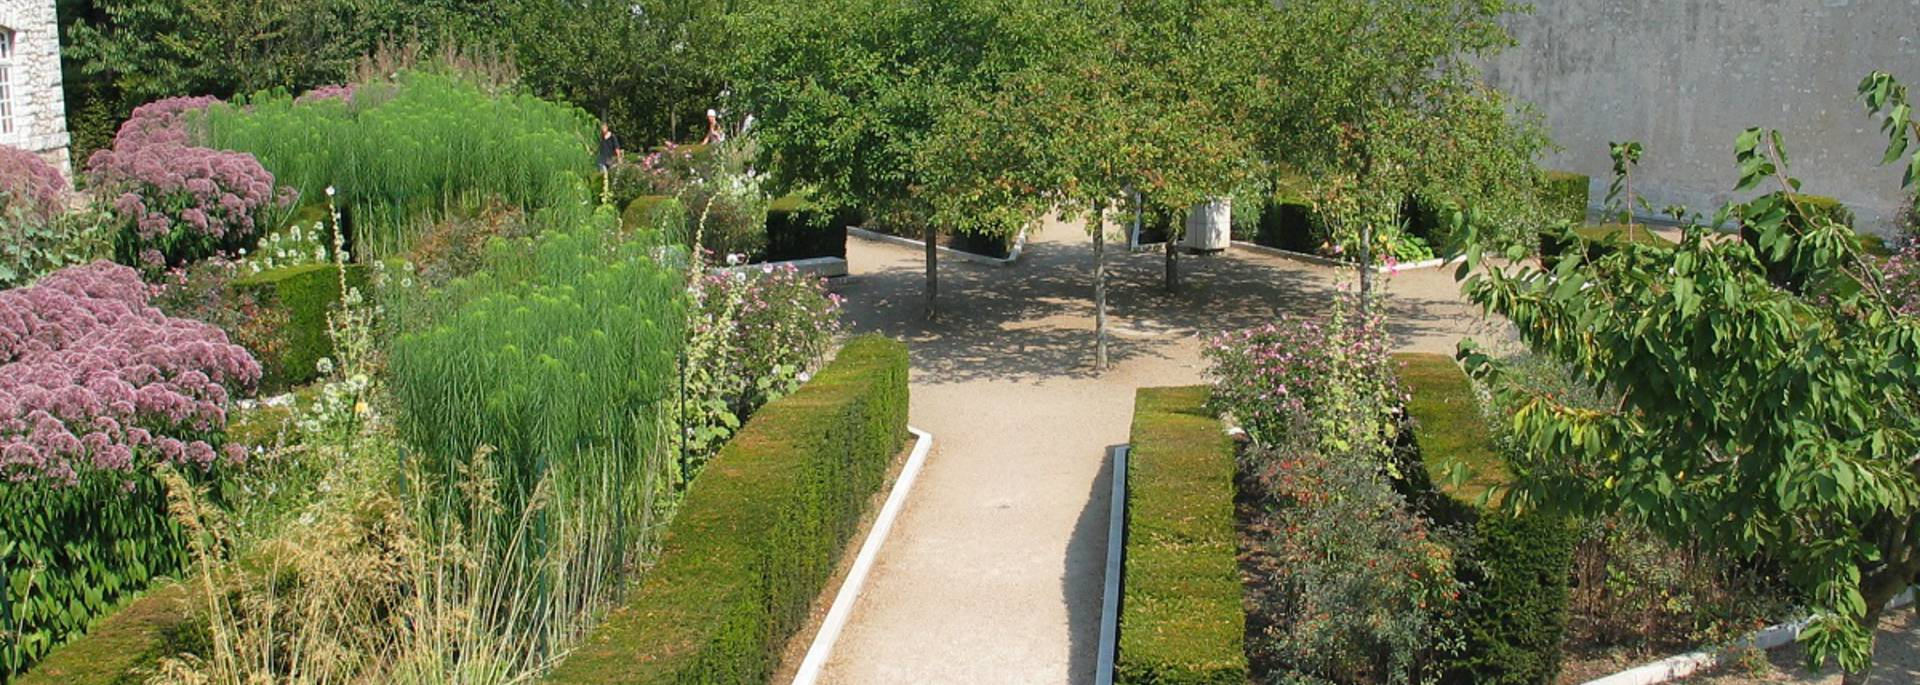 The gardens of the Roy in Blois